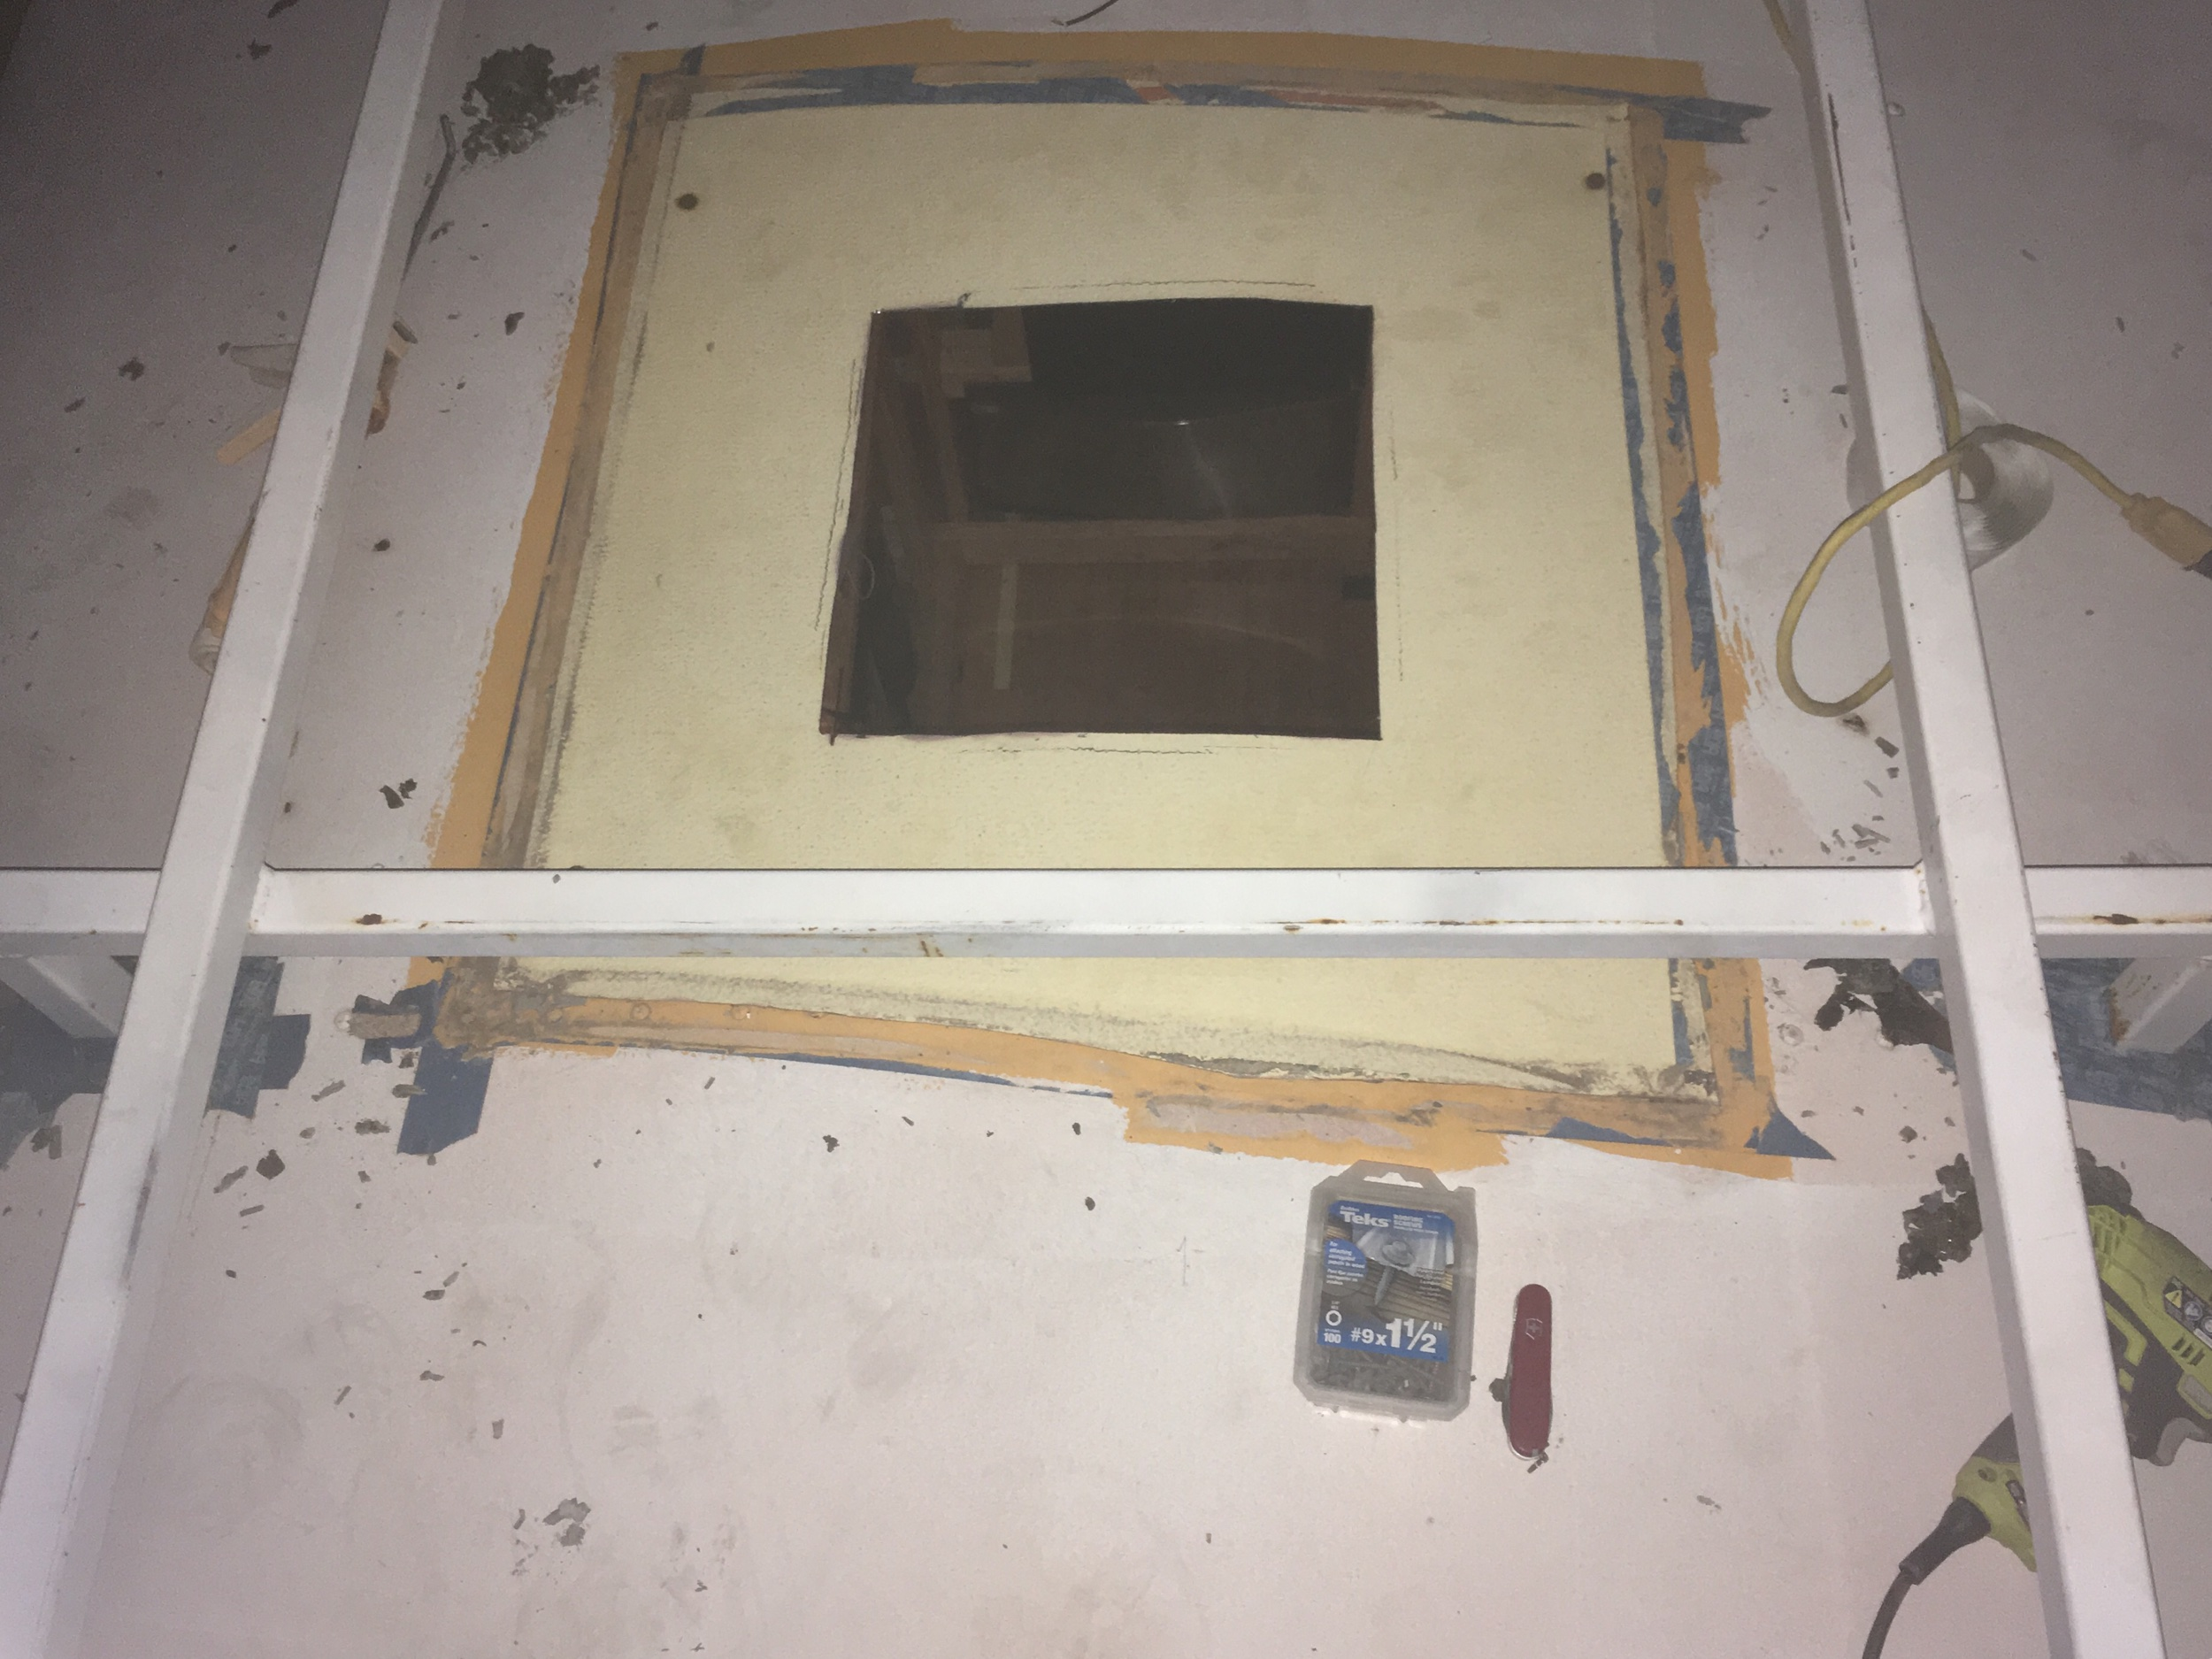 """14""""x14"""" hole cut into the ceiling. Soon to be screwed down. Butyl tape already in place below."""